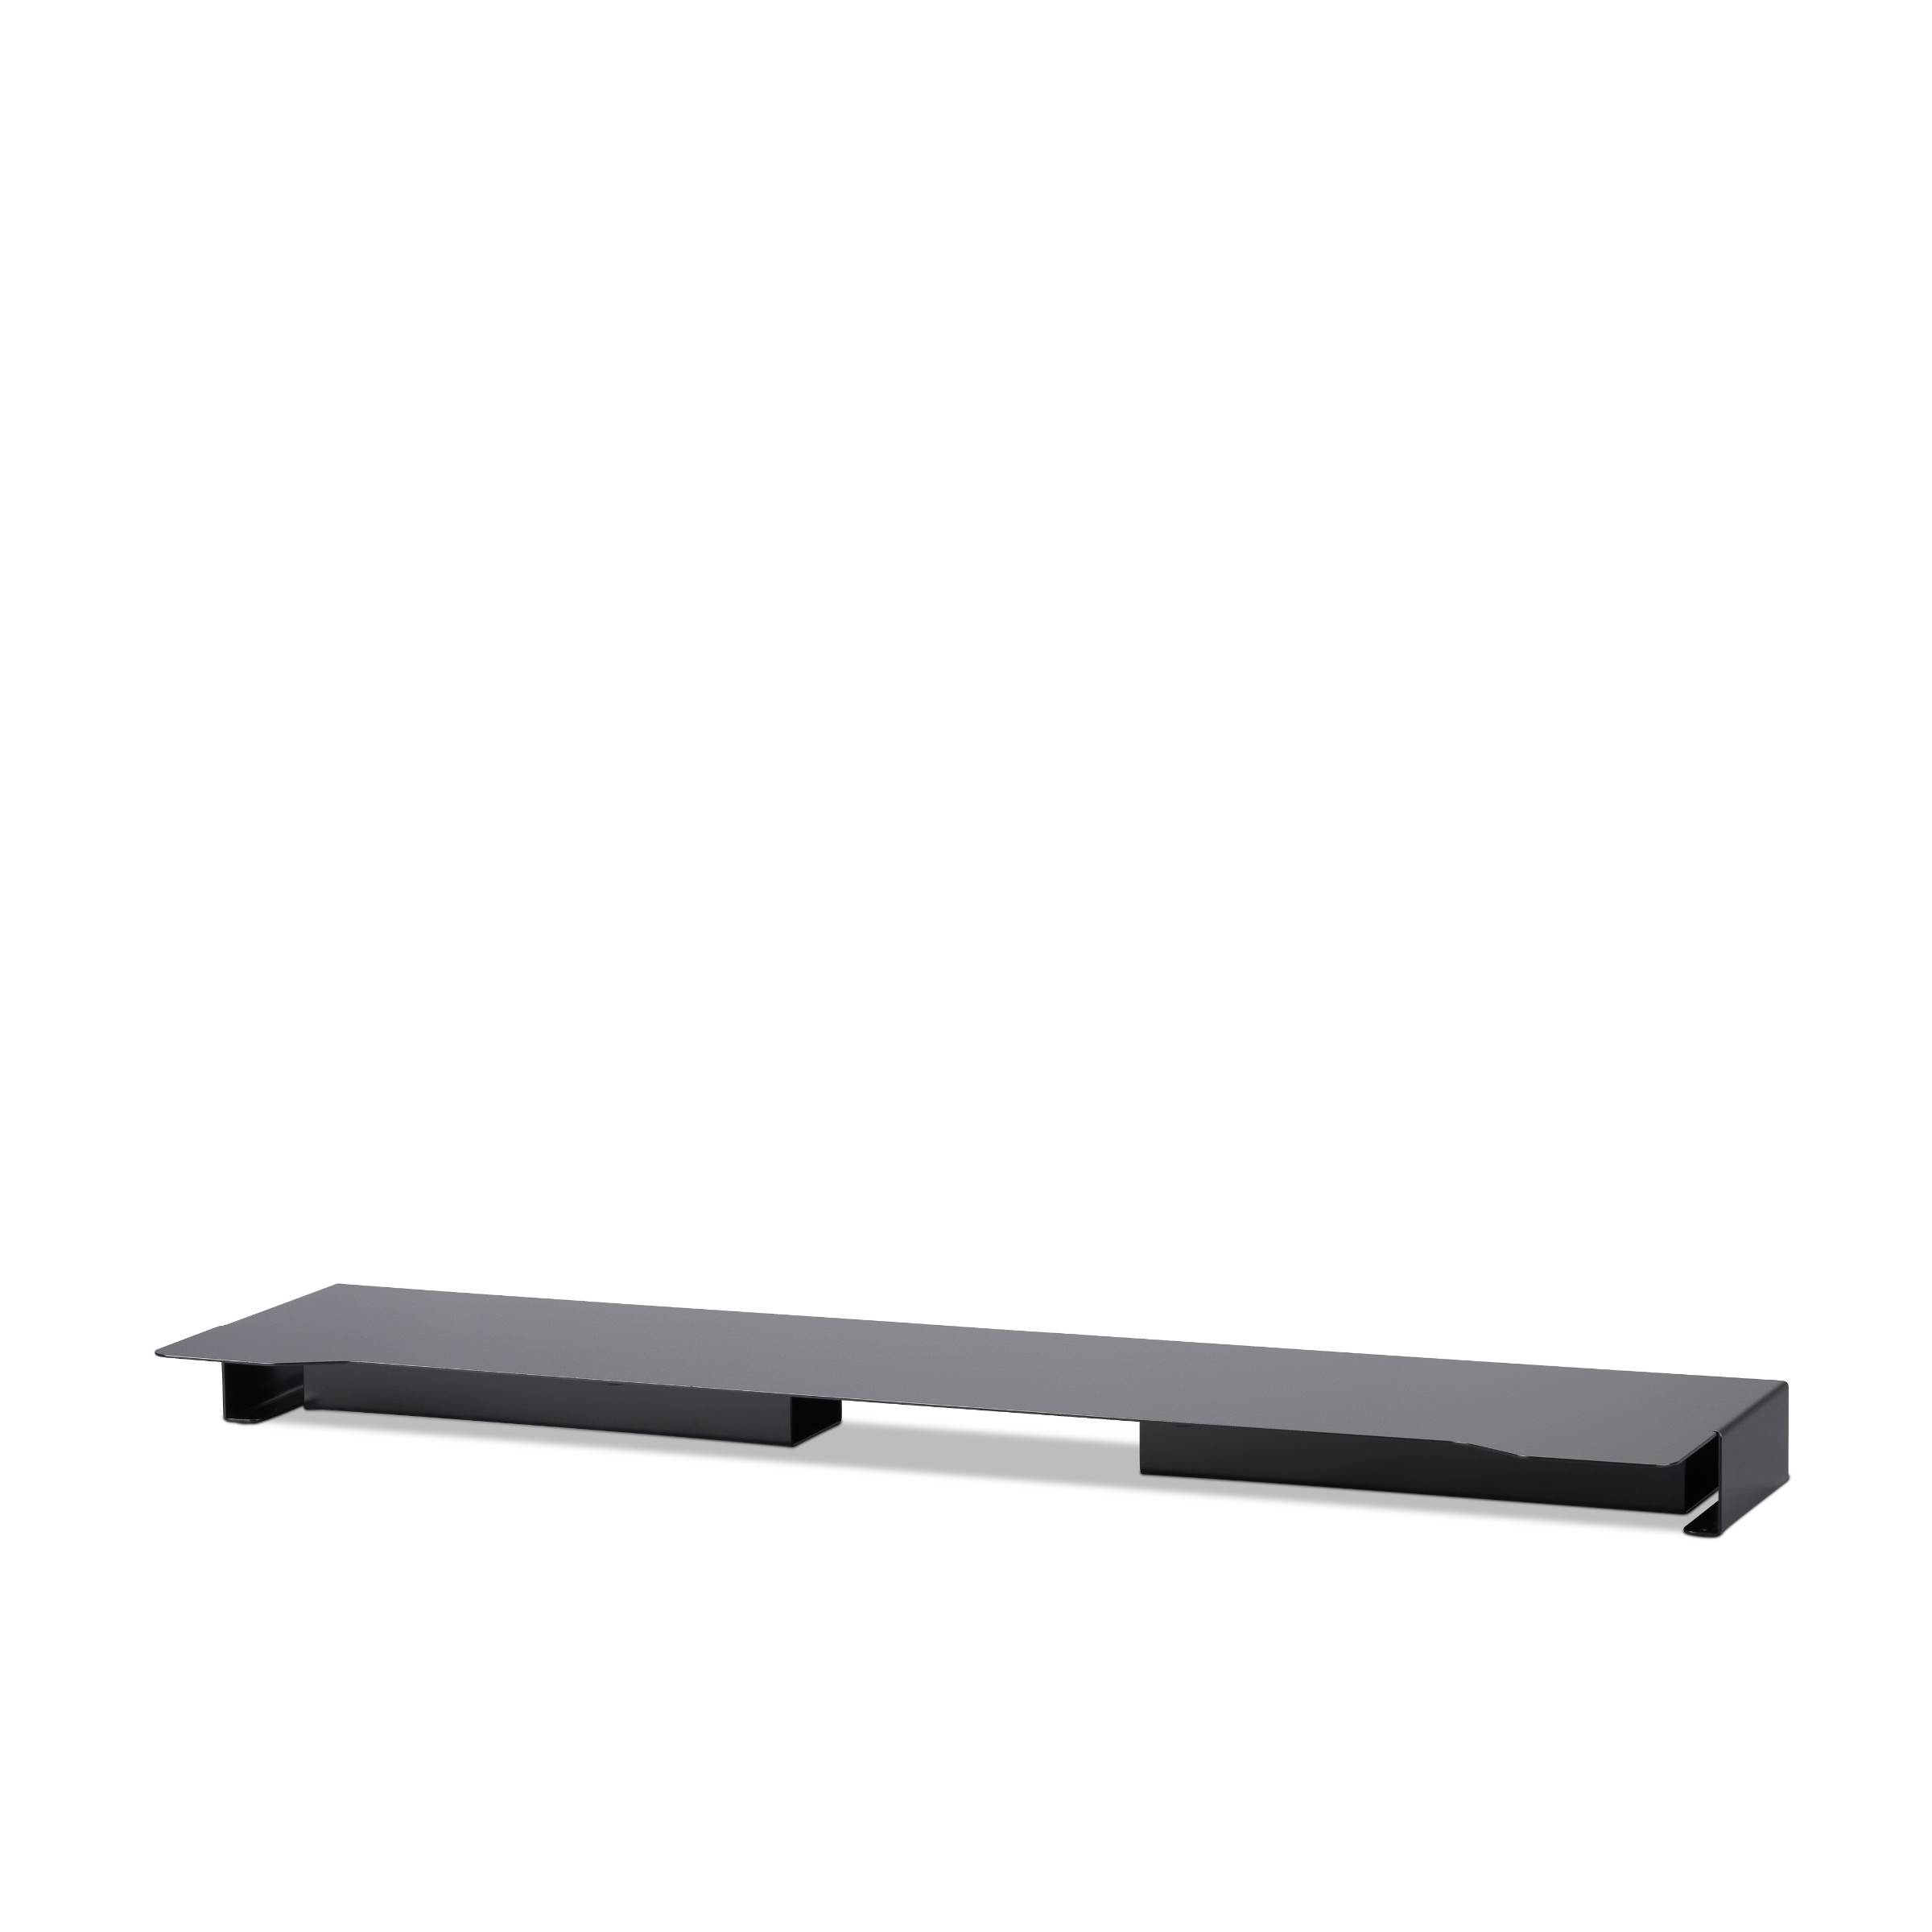 Bose SoundTouch 300 tv standaard 1